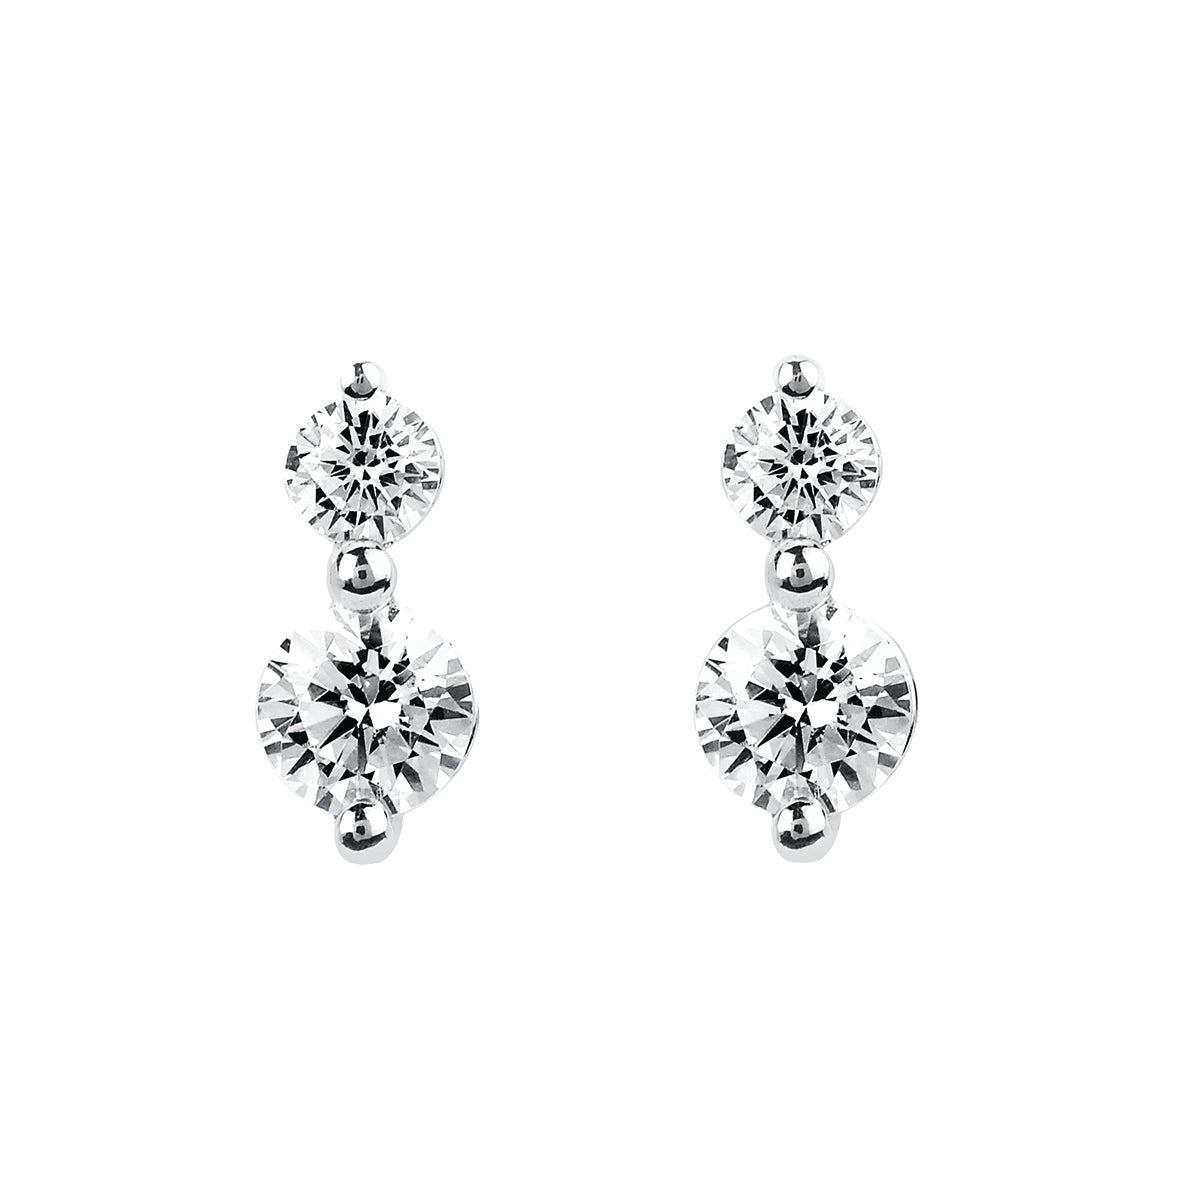 Two Diamond Drop Earrings in White, Yellow or Rose Gold - Talisman Collection Fine Jewelers